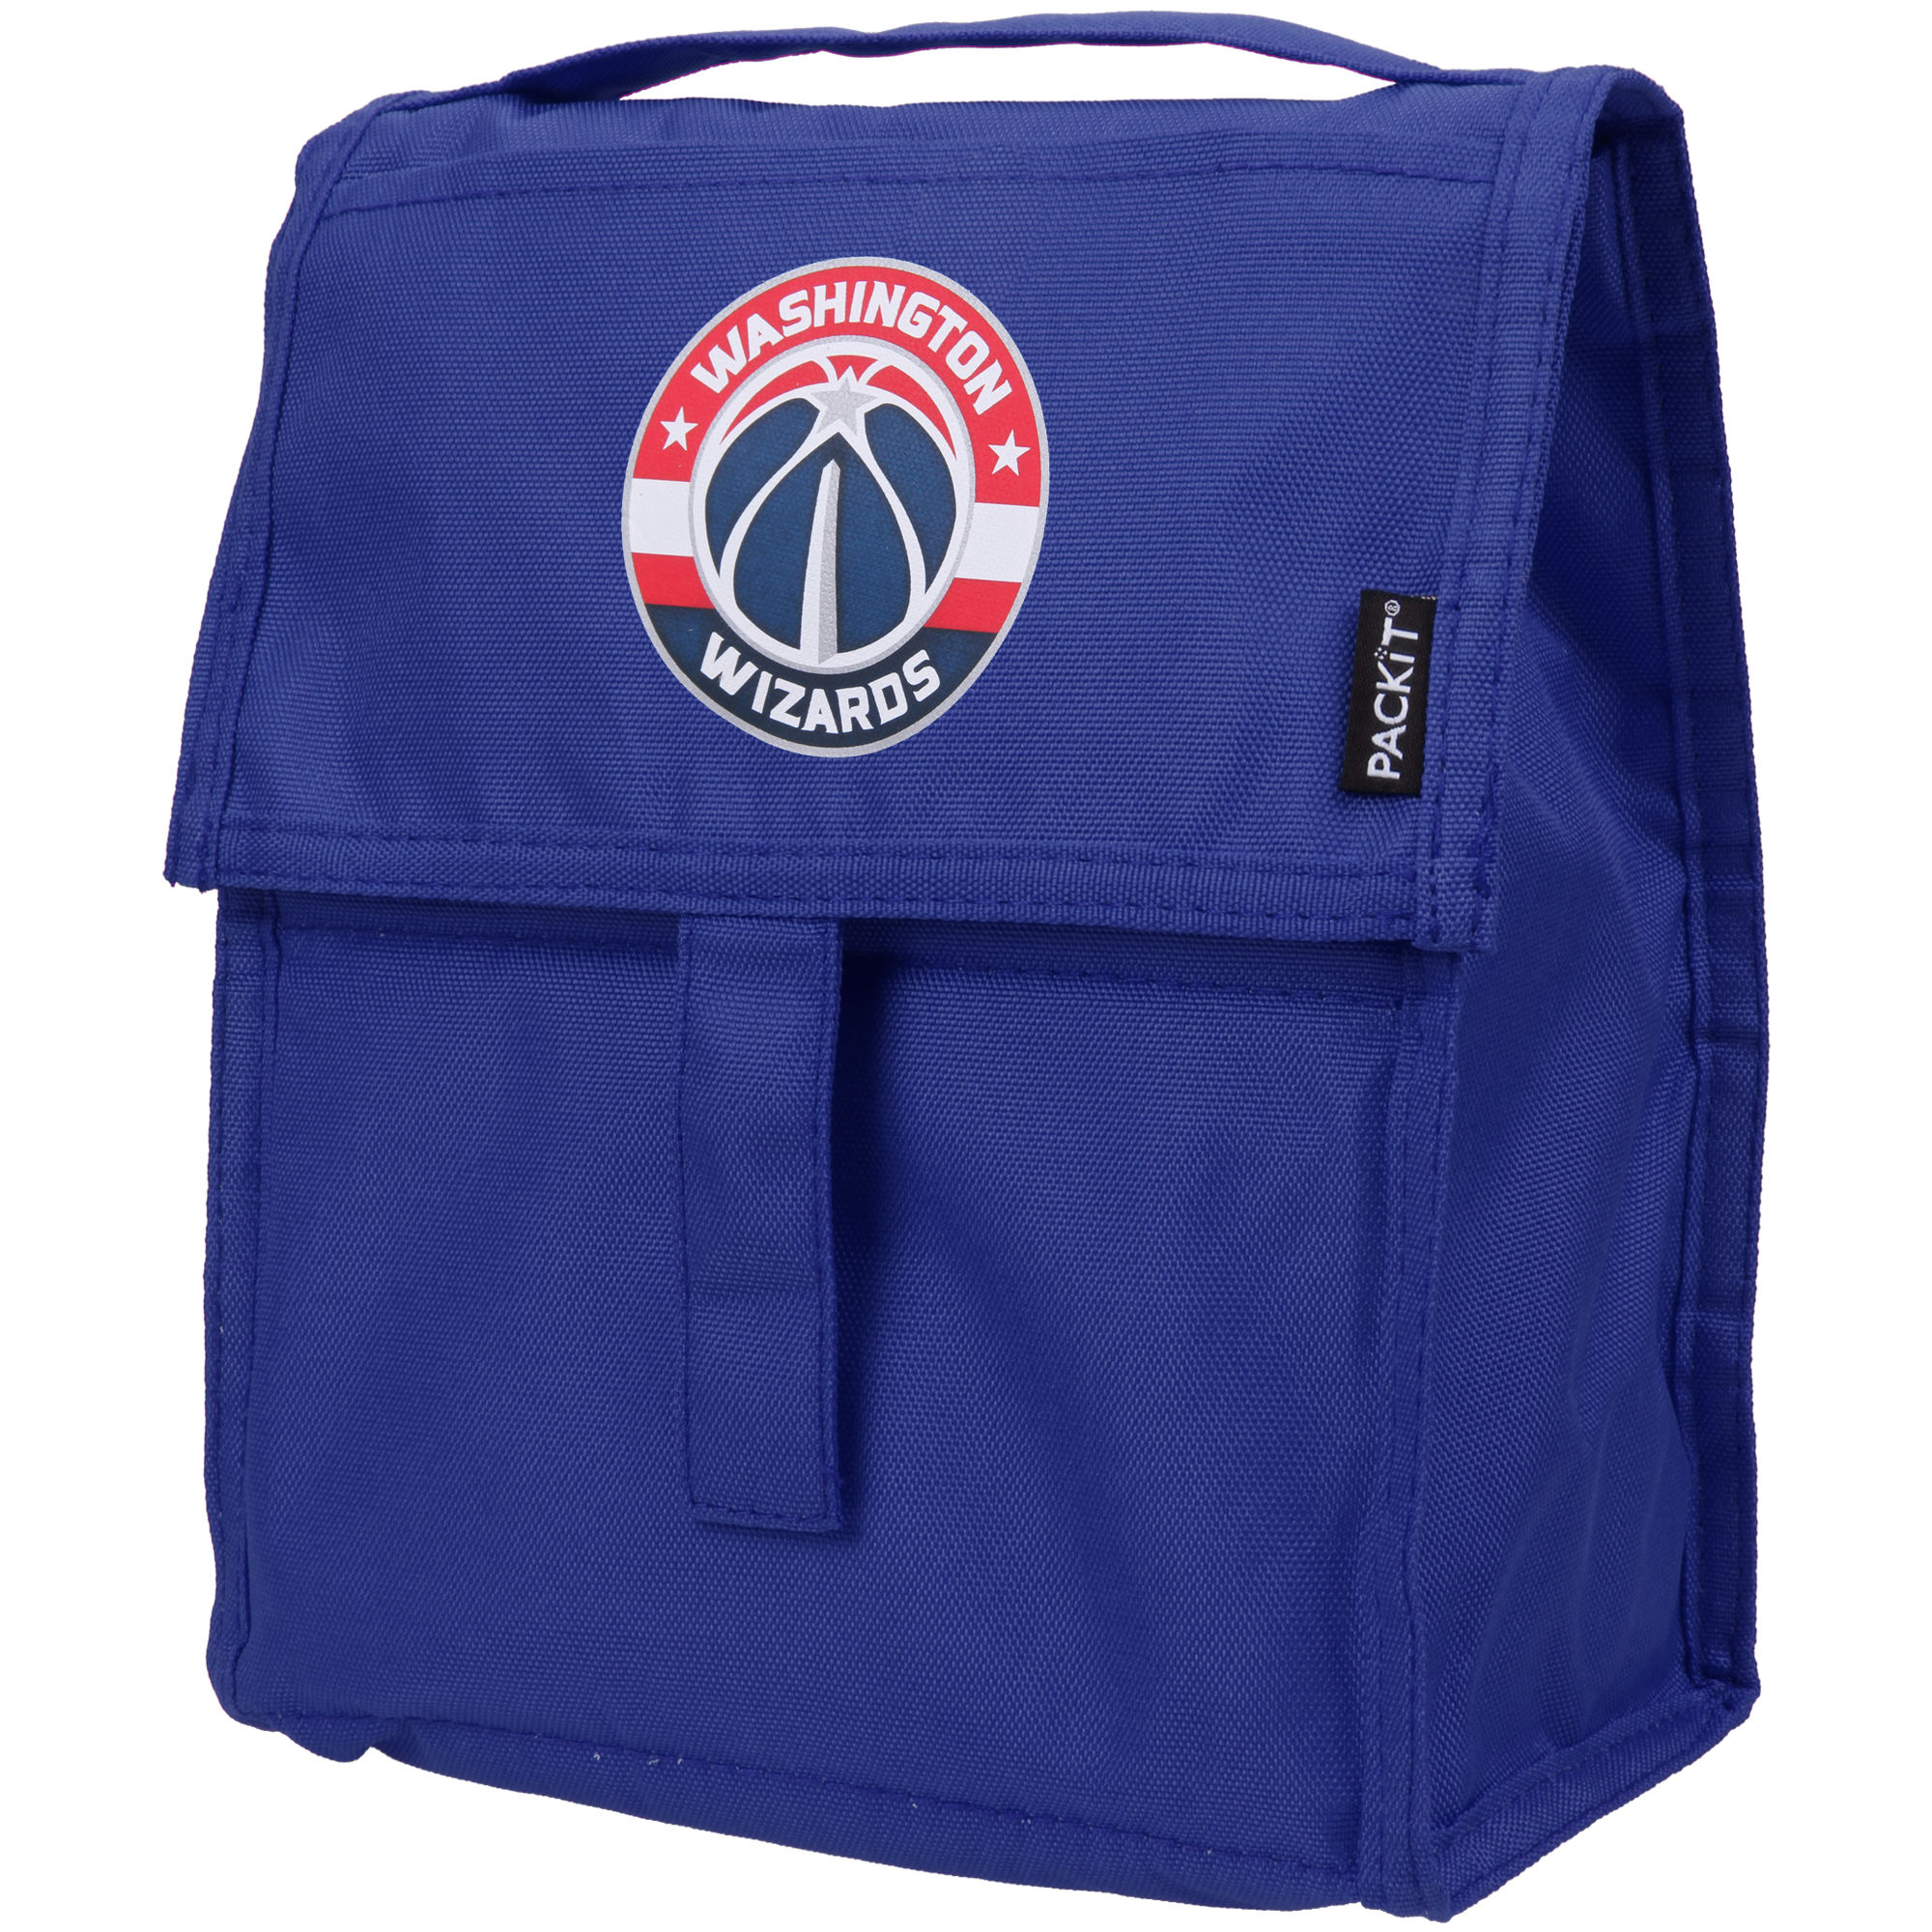 Washington Wizards PackIt Lunch Box - No Size